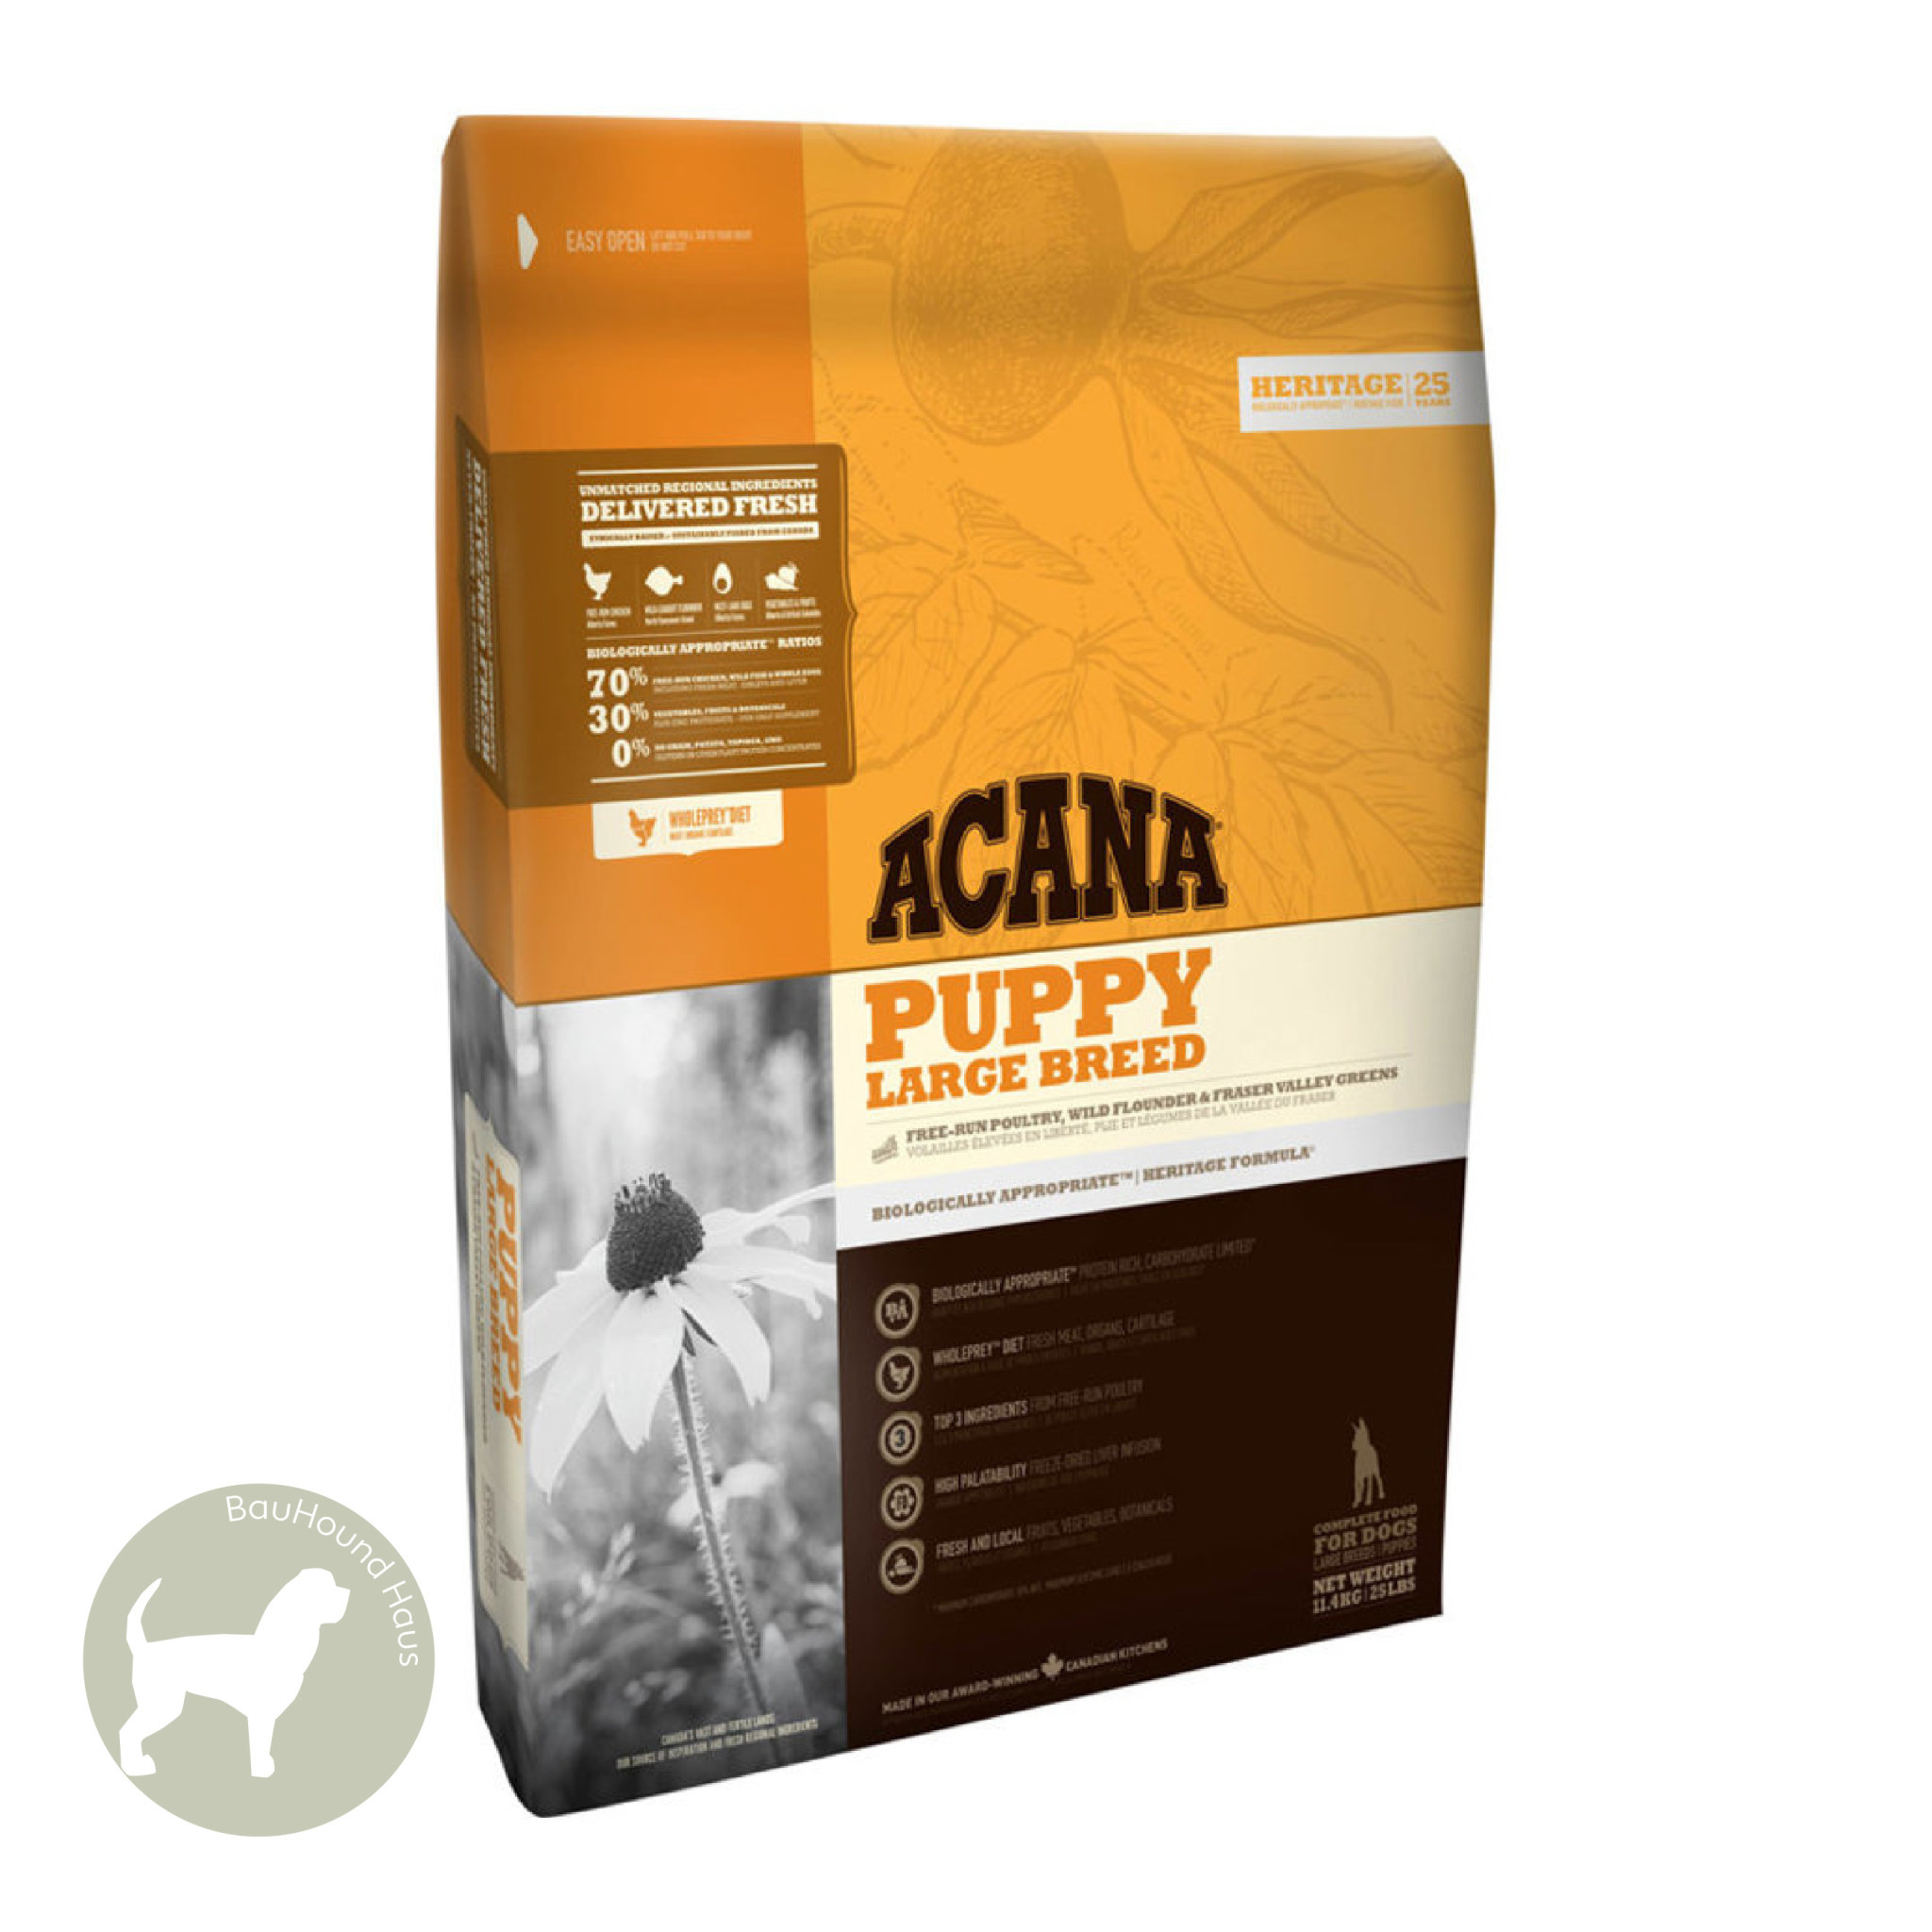 Acana Acana HERITAGE Large Breed Puppy Kibble, 11.4kg